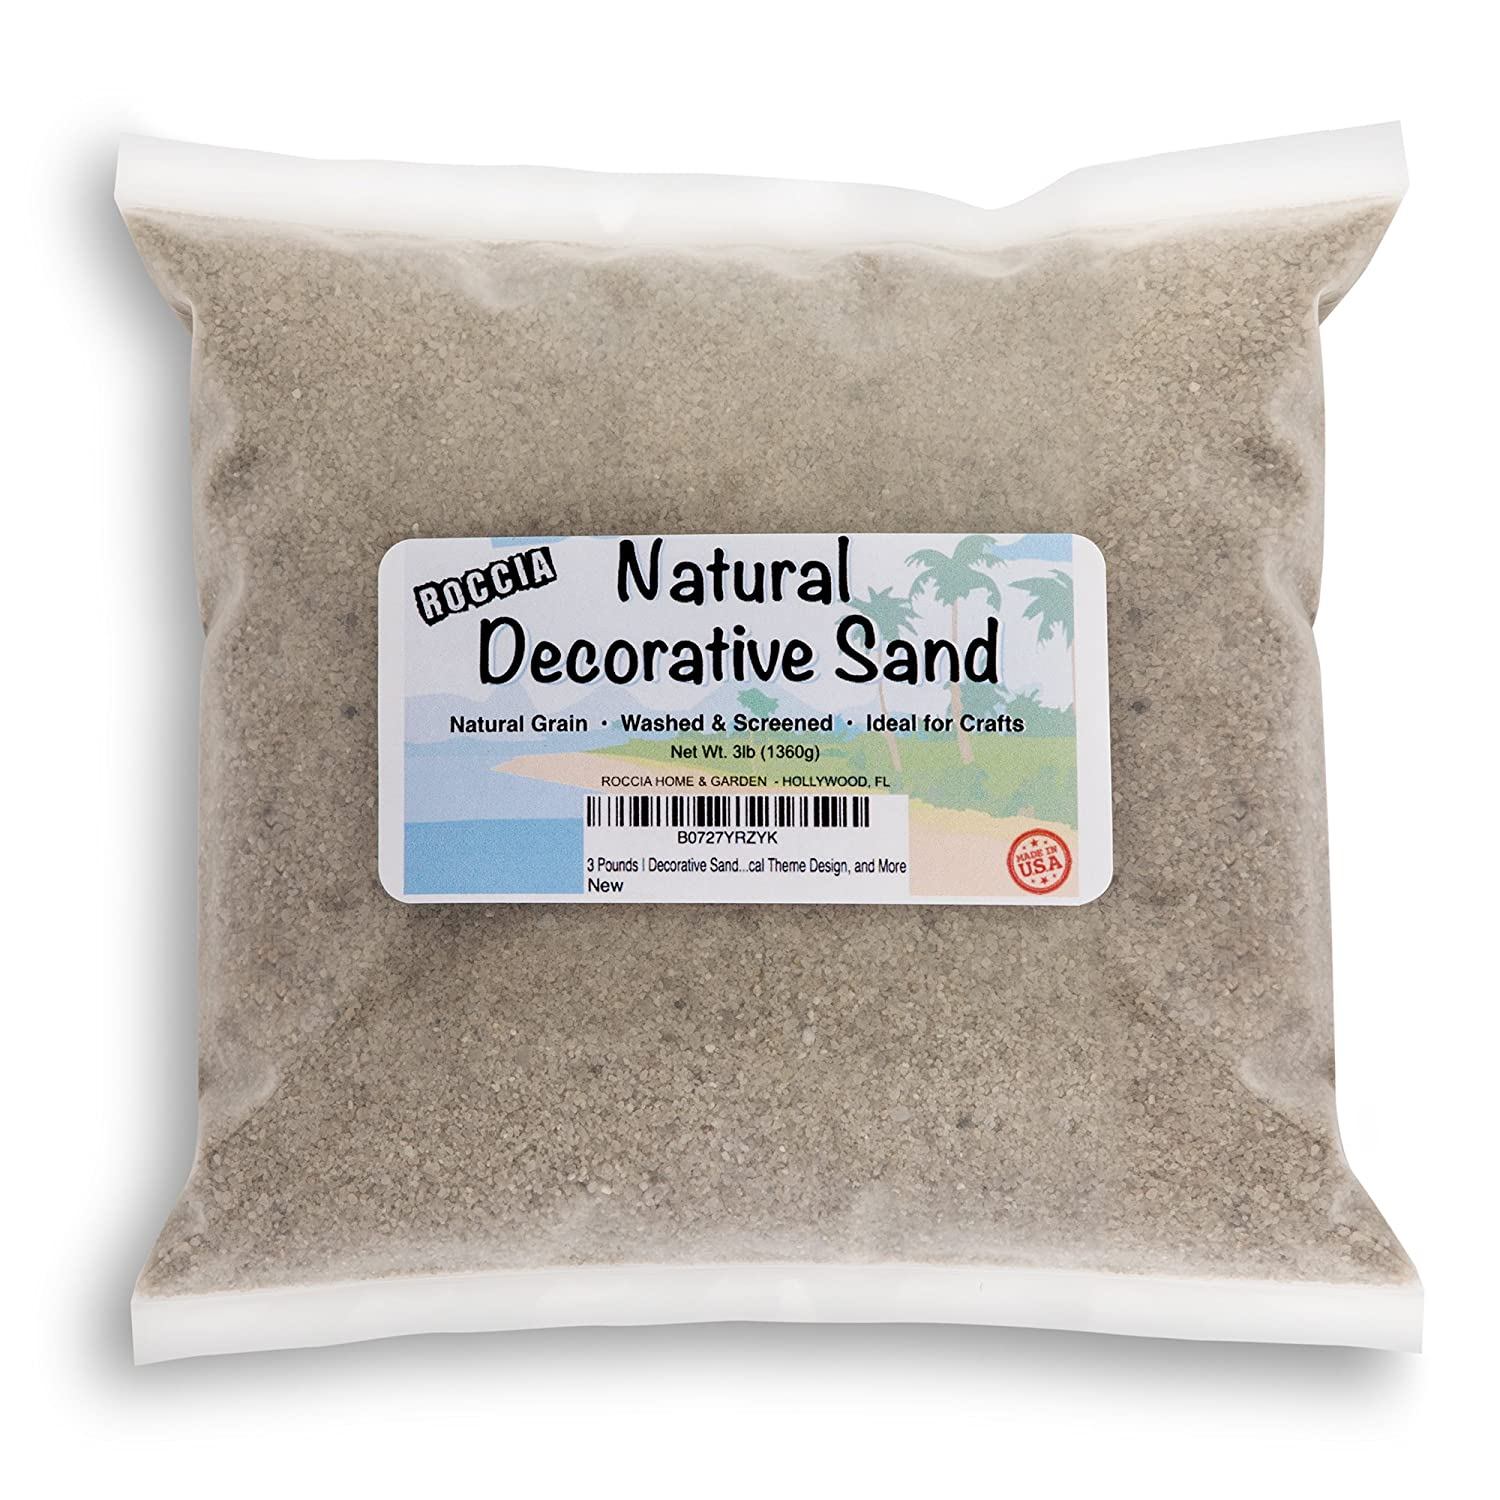 Amazon 3 pounds real sand natural color for interior amazon 3 pounds real sand natural color for interior decor vase filler sand crafts nautical theme design and more toys games reviewsmspy